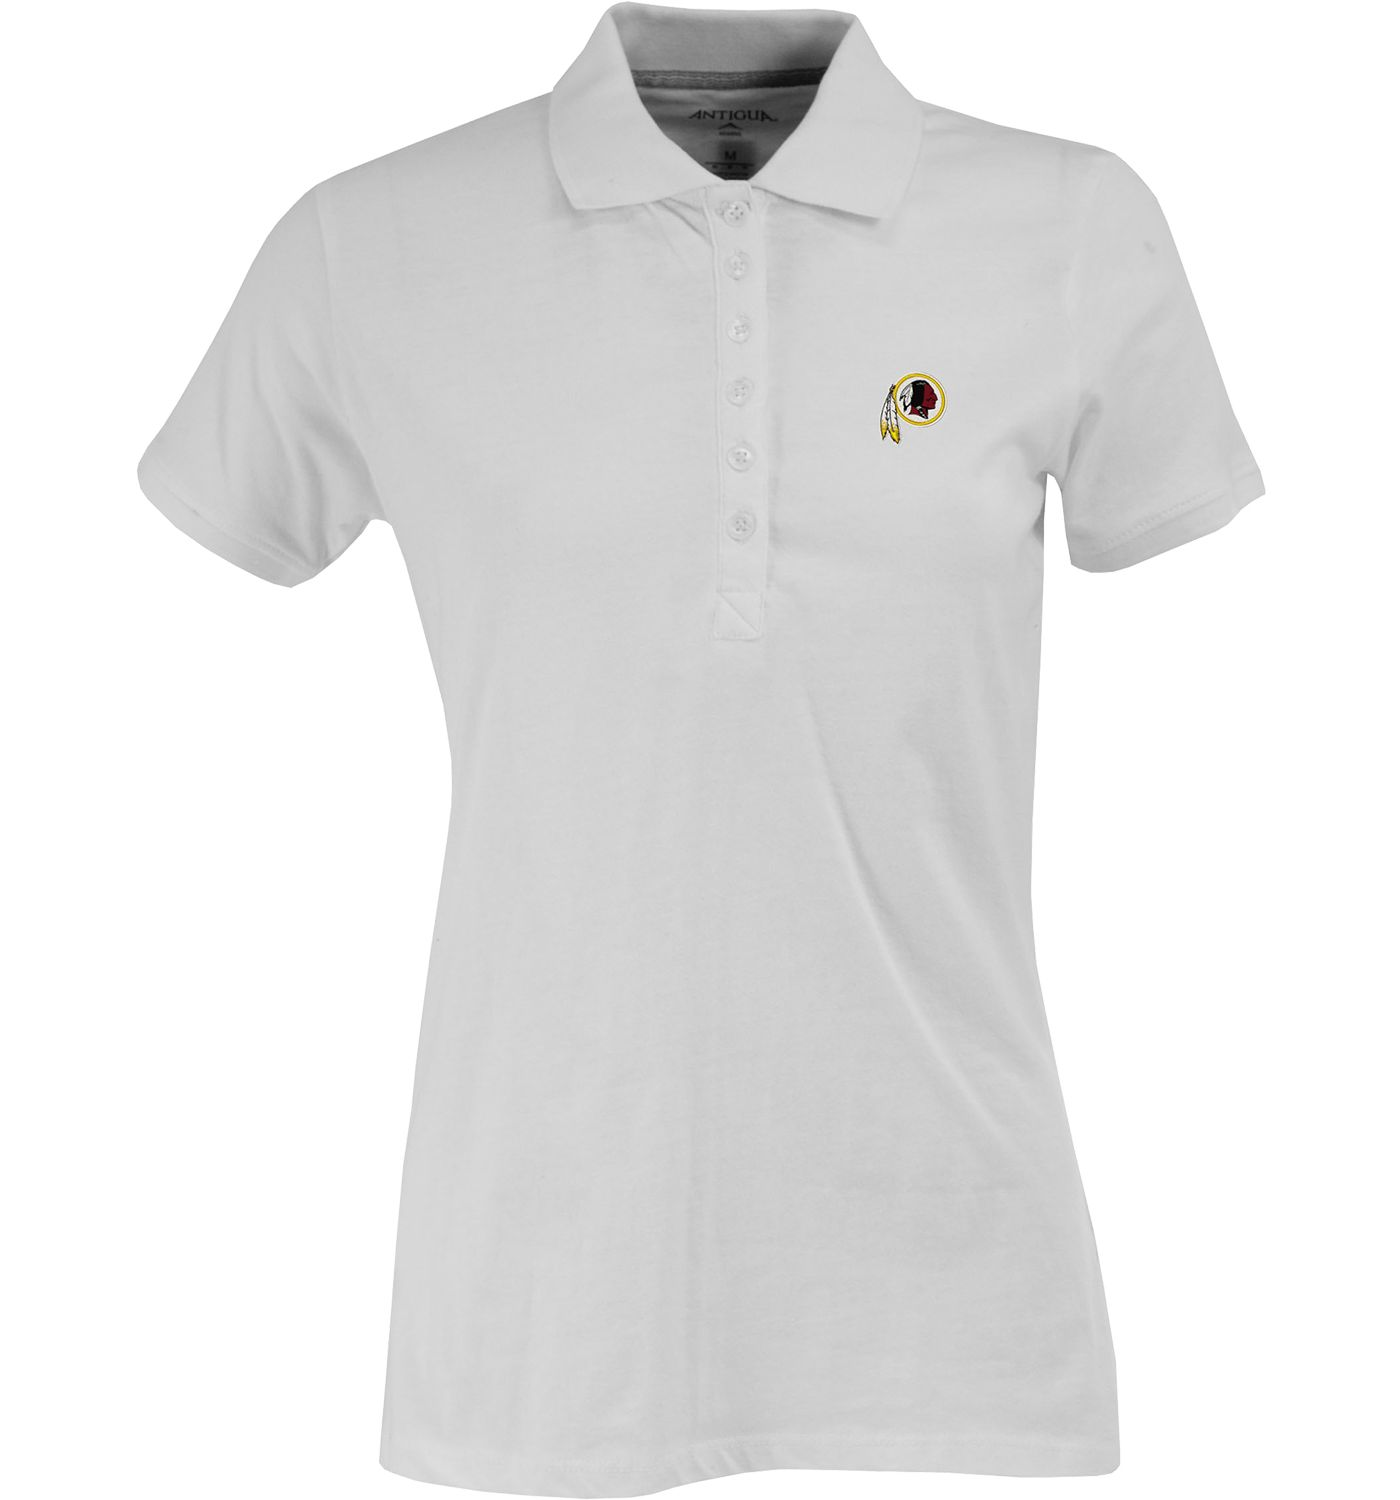 Antigua Women's Washington Redskins White Spark Polo